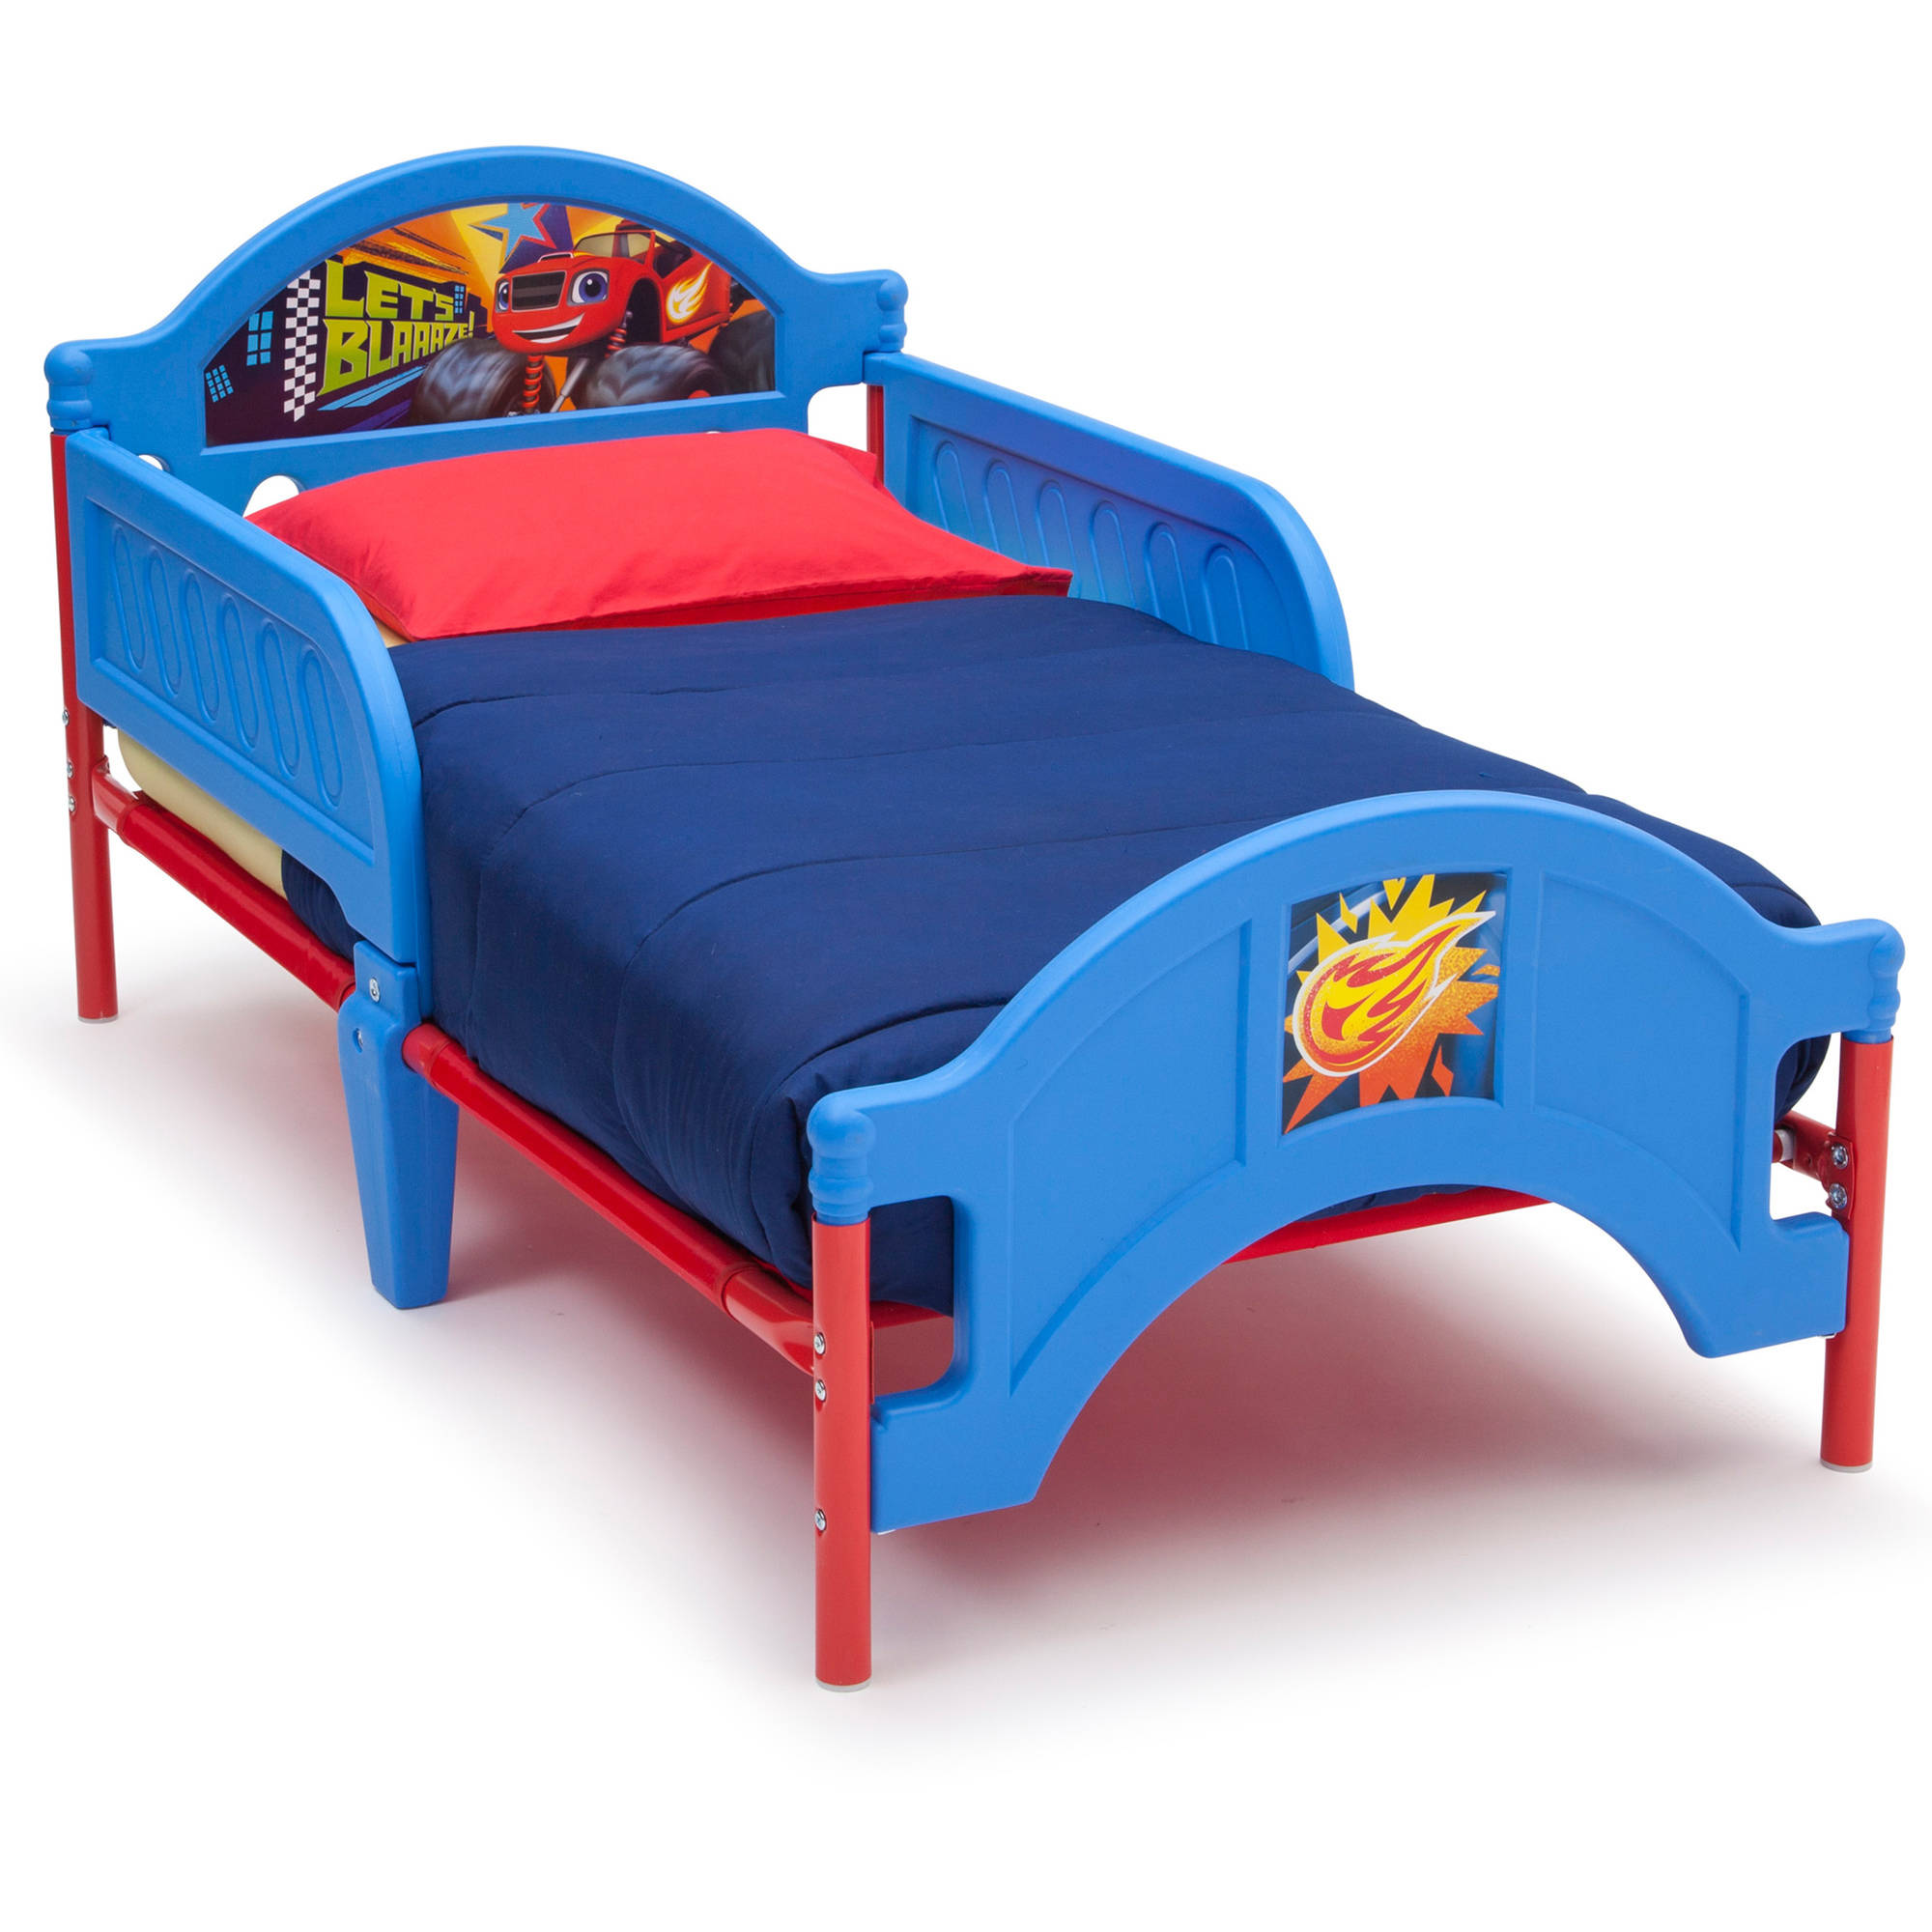 Nick jr blaze and the monster machines bedroom set with bonus toy organizer Plastic bedroom furniture